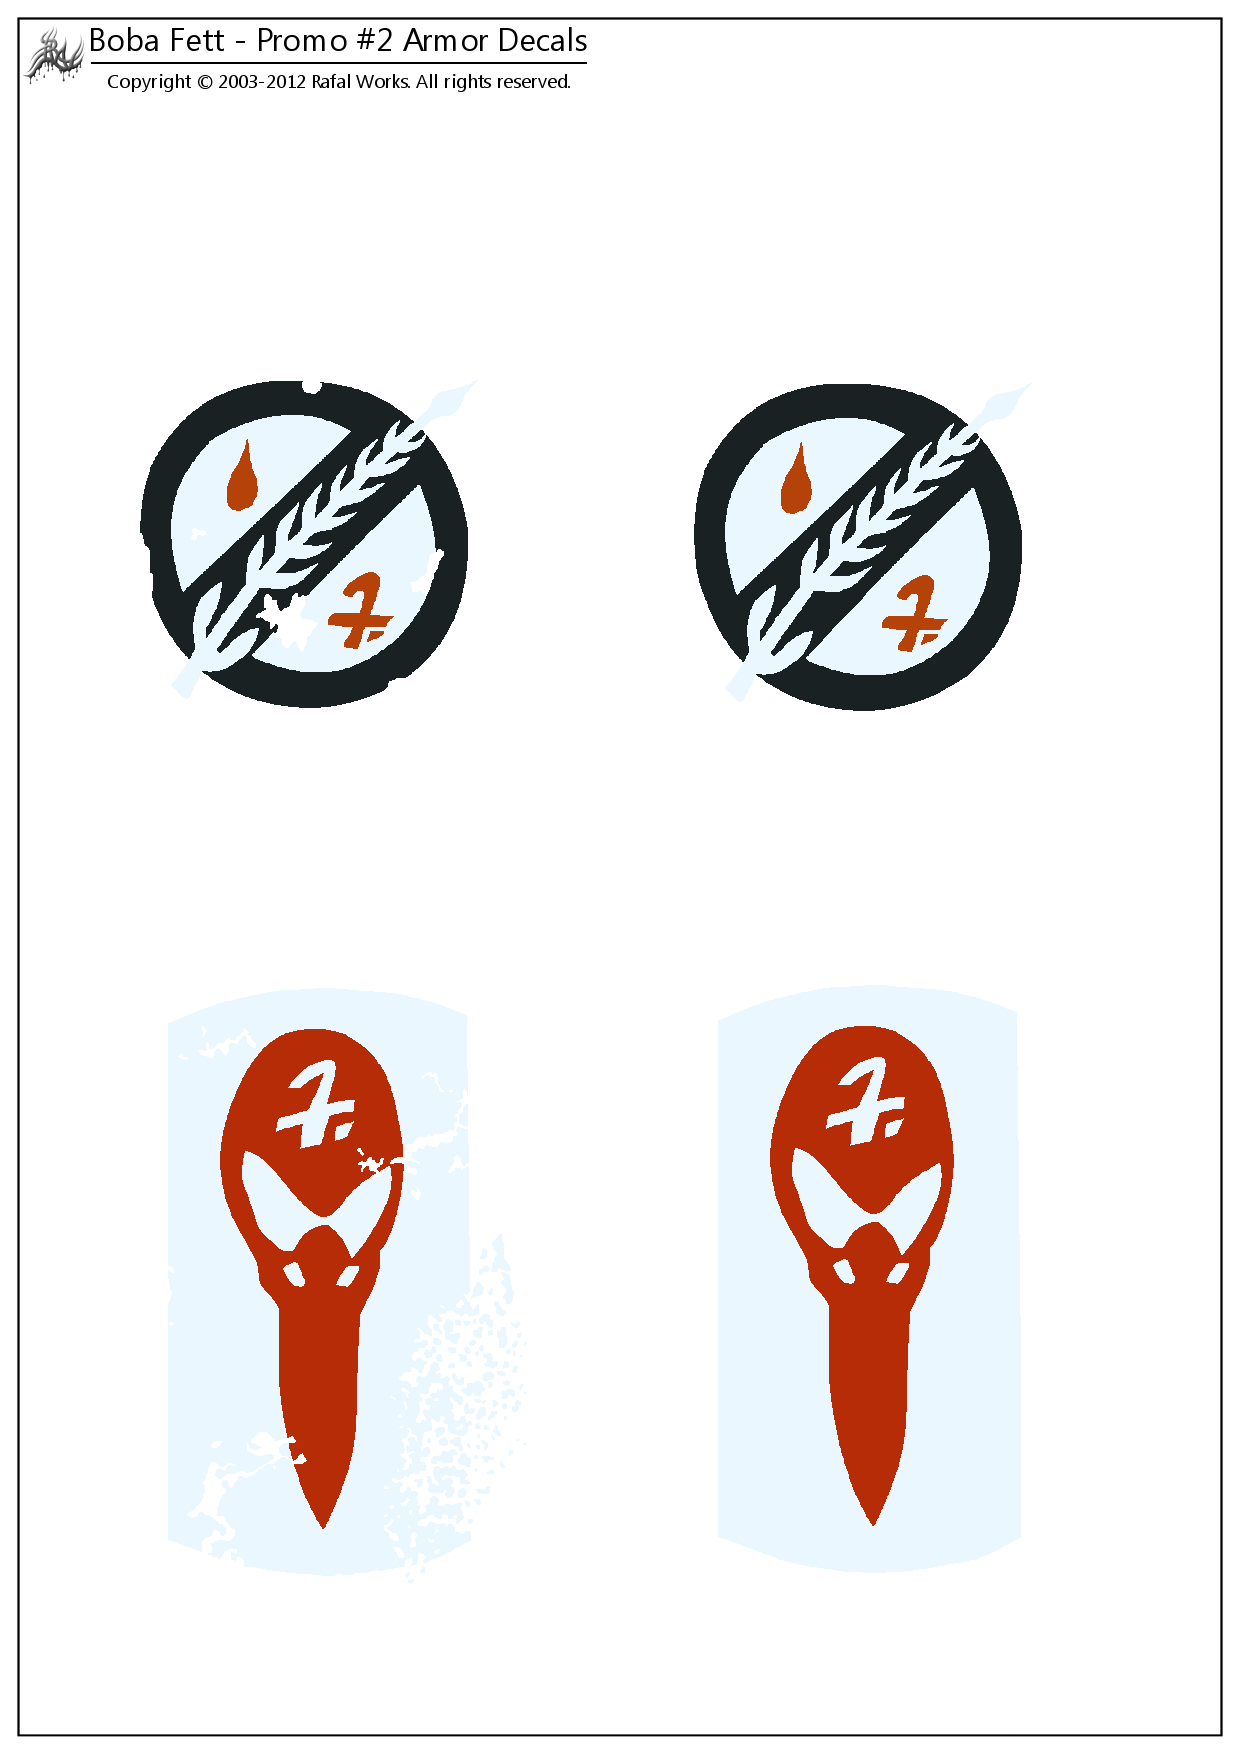 Promo2 Armor Decals A4.png